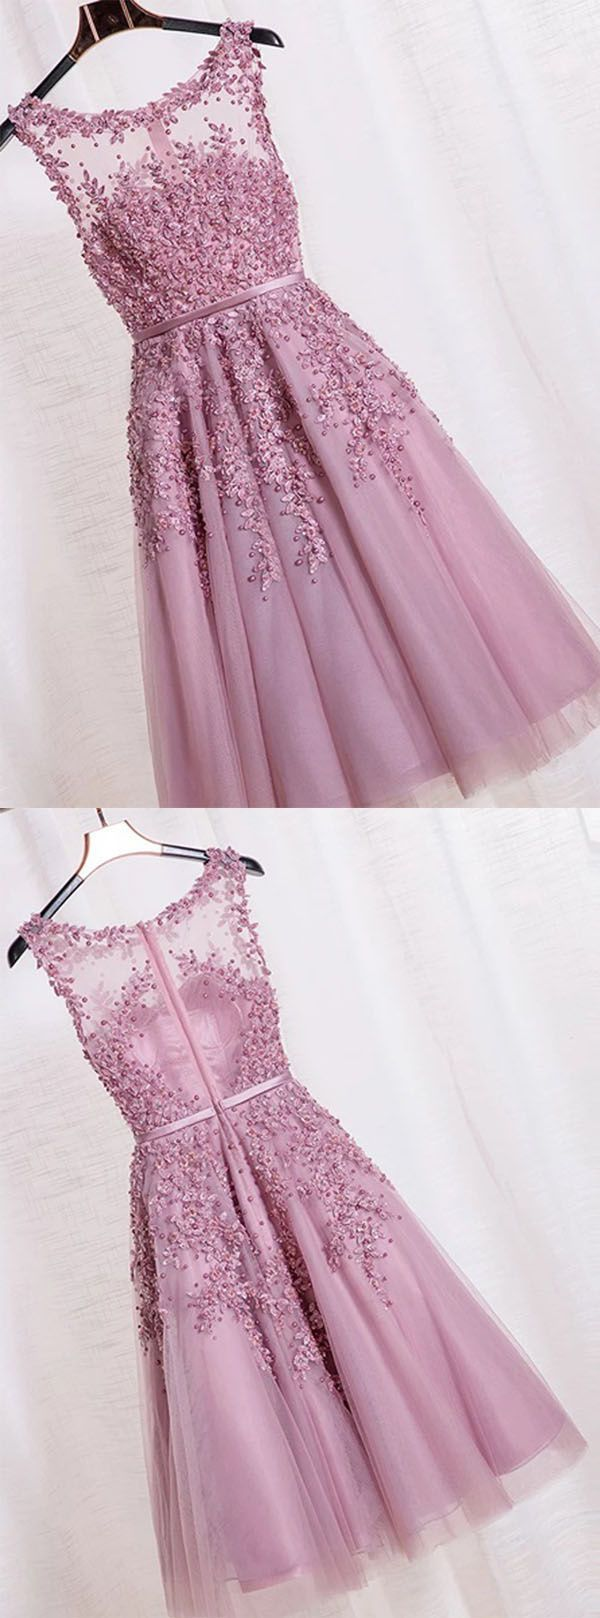 https://www.dresstells.com/a-line-scoop-knee-length-purple-zipper-up-organza-homecoming-dress-with-appliques-beading.html scoop neck evening dress, knee-length bridesmaid dress, purple homecoming dress, homecoming dress with appliques, organza prom dress, party dress with beading, zipper-up homecoming dress, 2016 homecoming dress, discount homecoming dress, dress for homecoming dress, cheap homecoming dress, #2016 #homecoming #purple #cheap